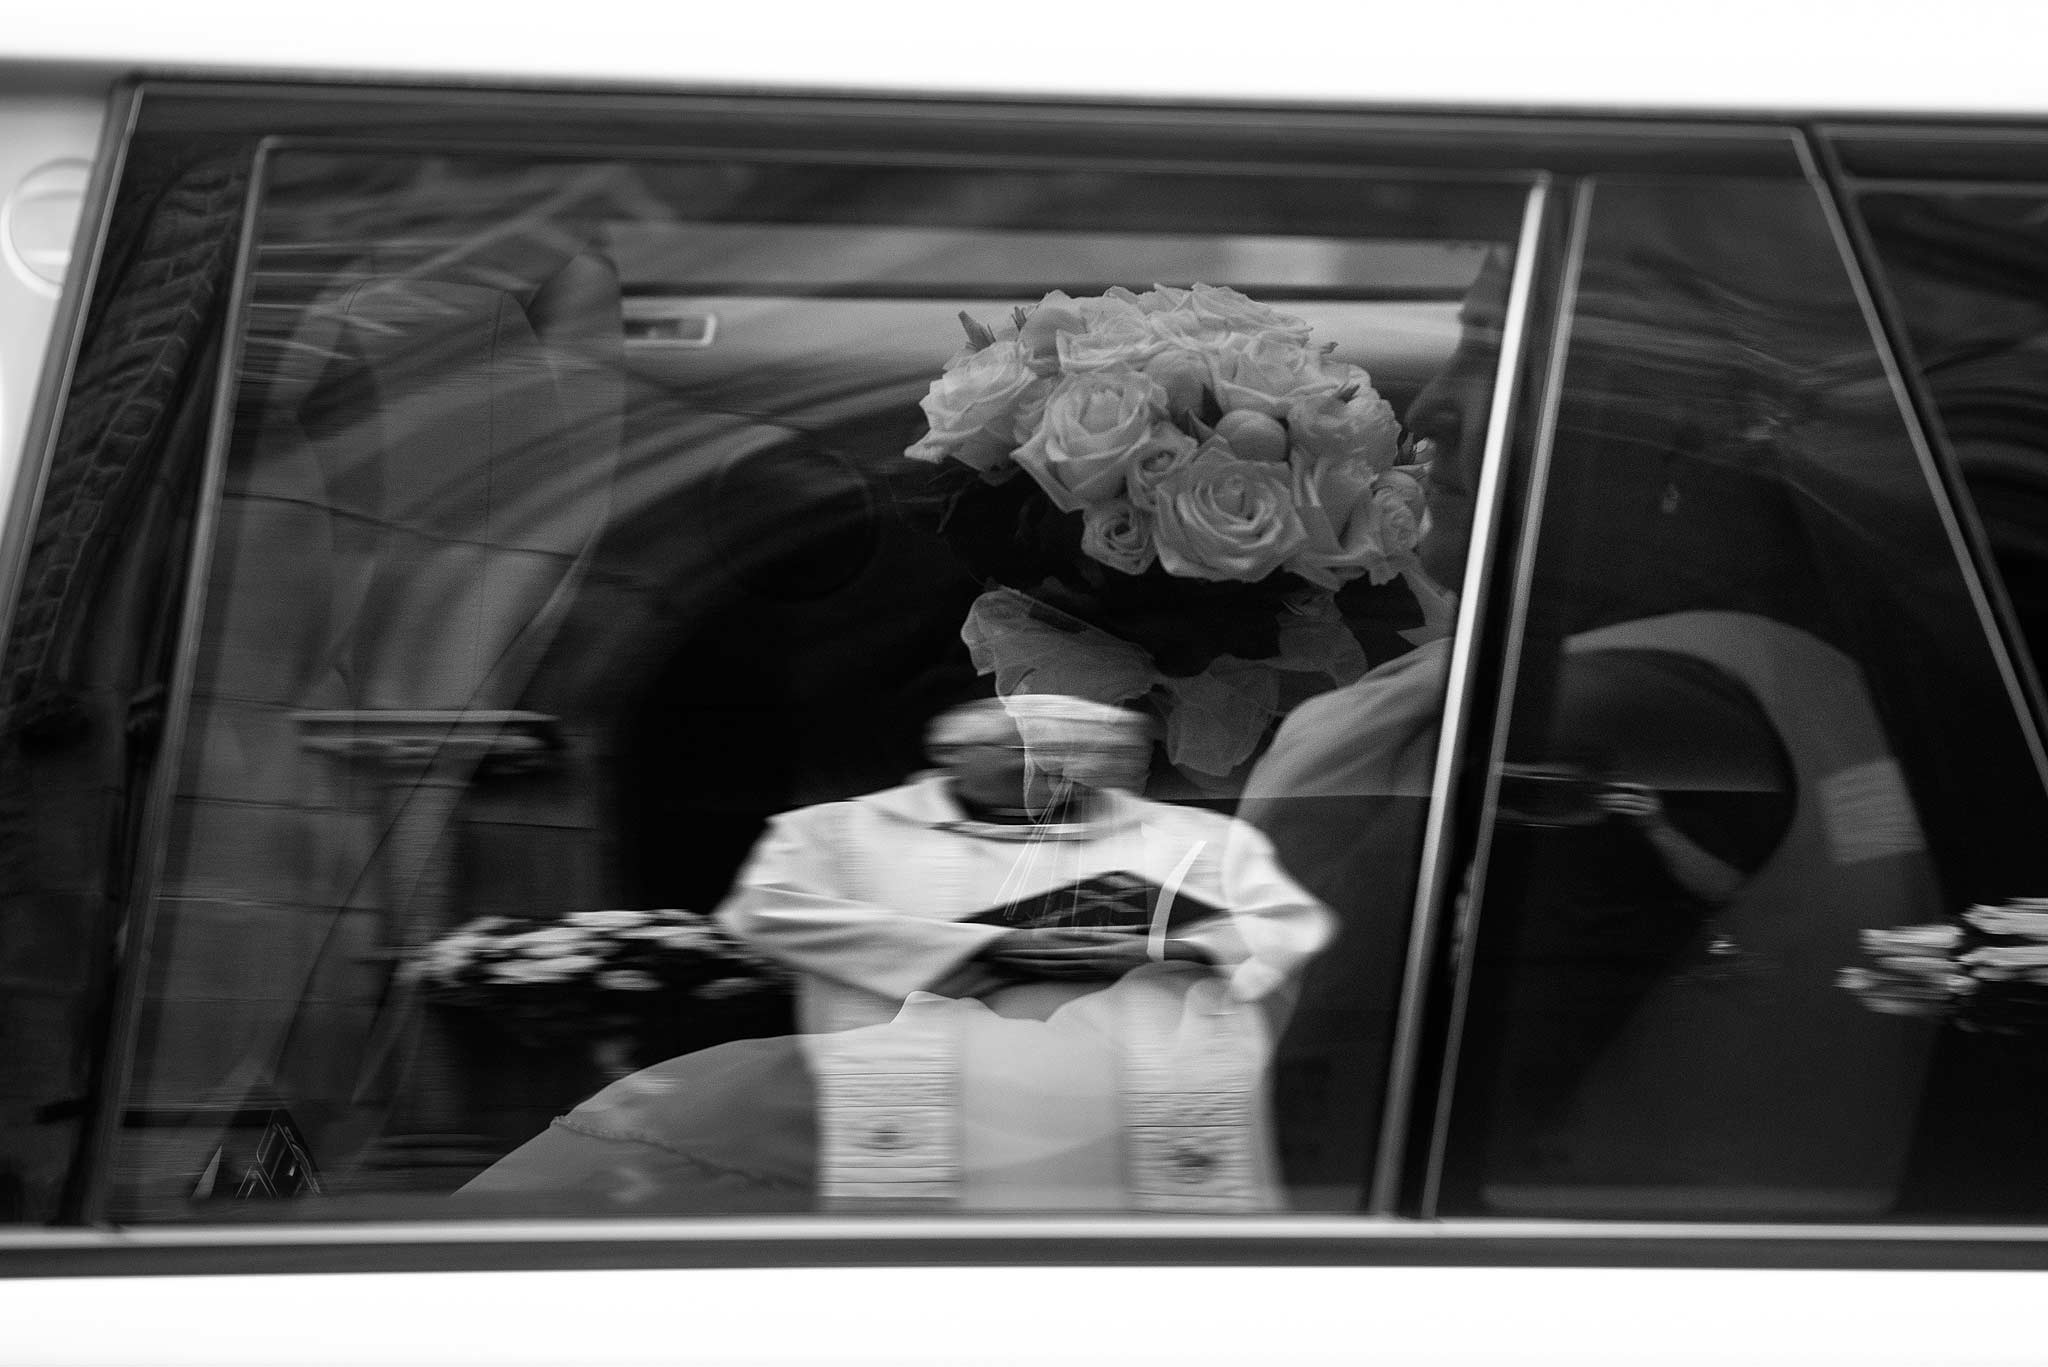 Reflection in the car window of the priest and bride